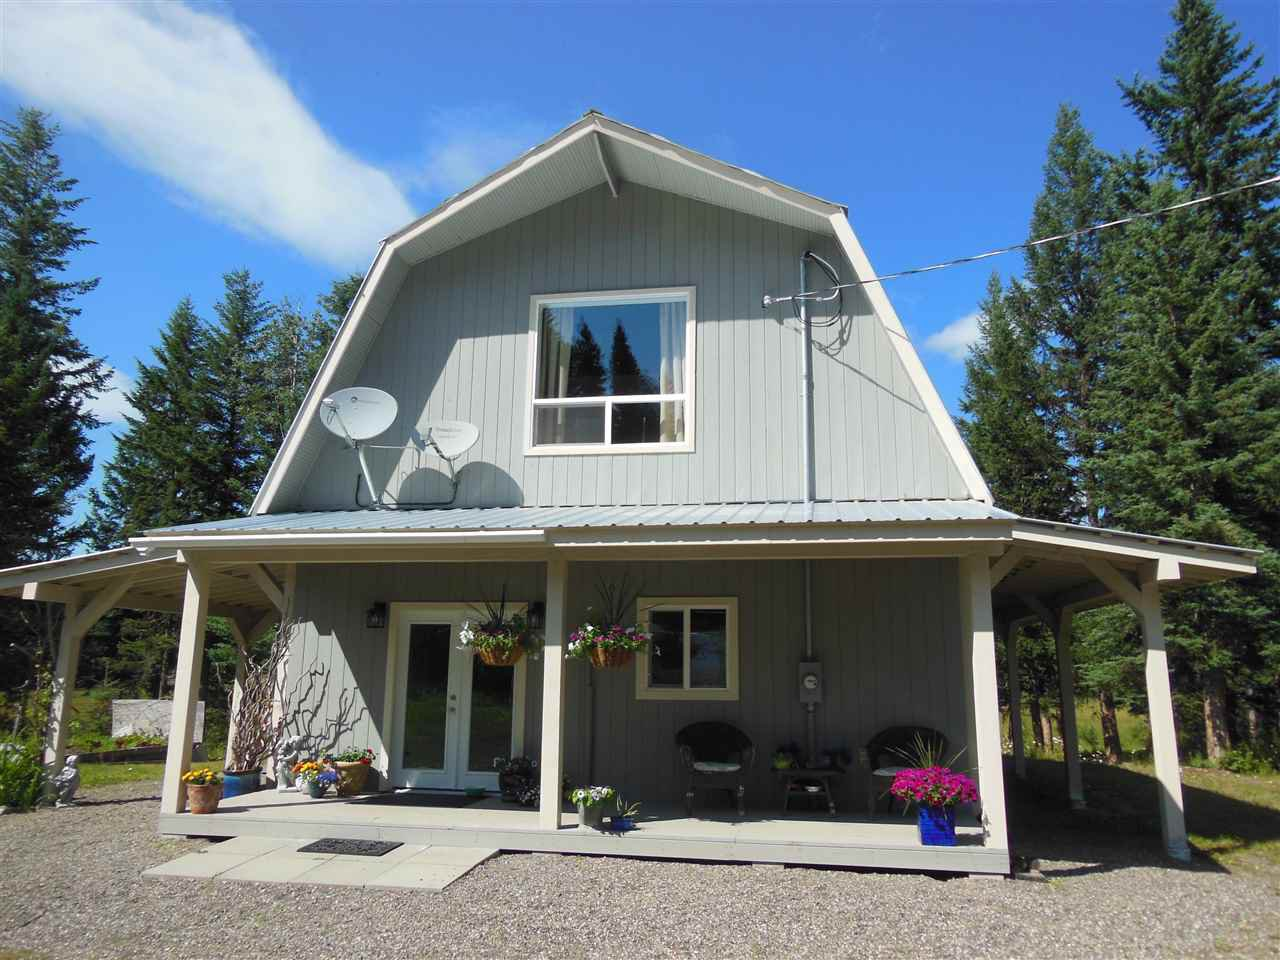 Photo 1: Photos: 3535 WESTWICK PIT Road: 150 Mile House House for sale (Williams Lake (Zone 27))  : MLS®# R2488772